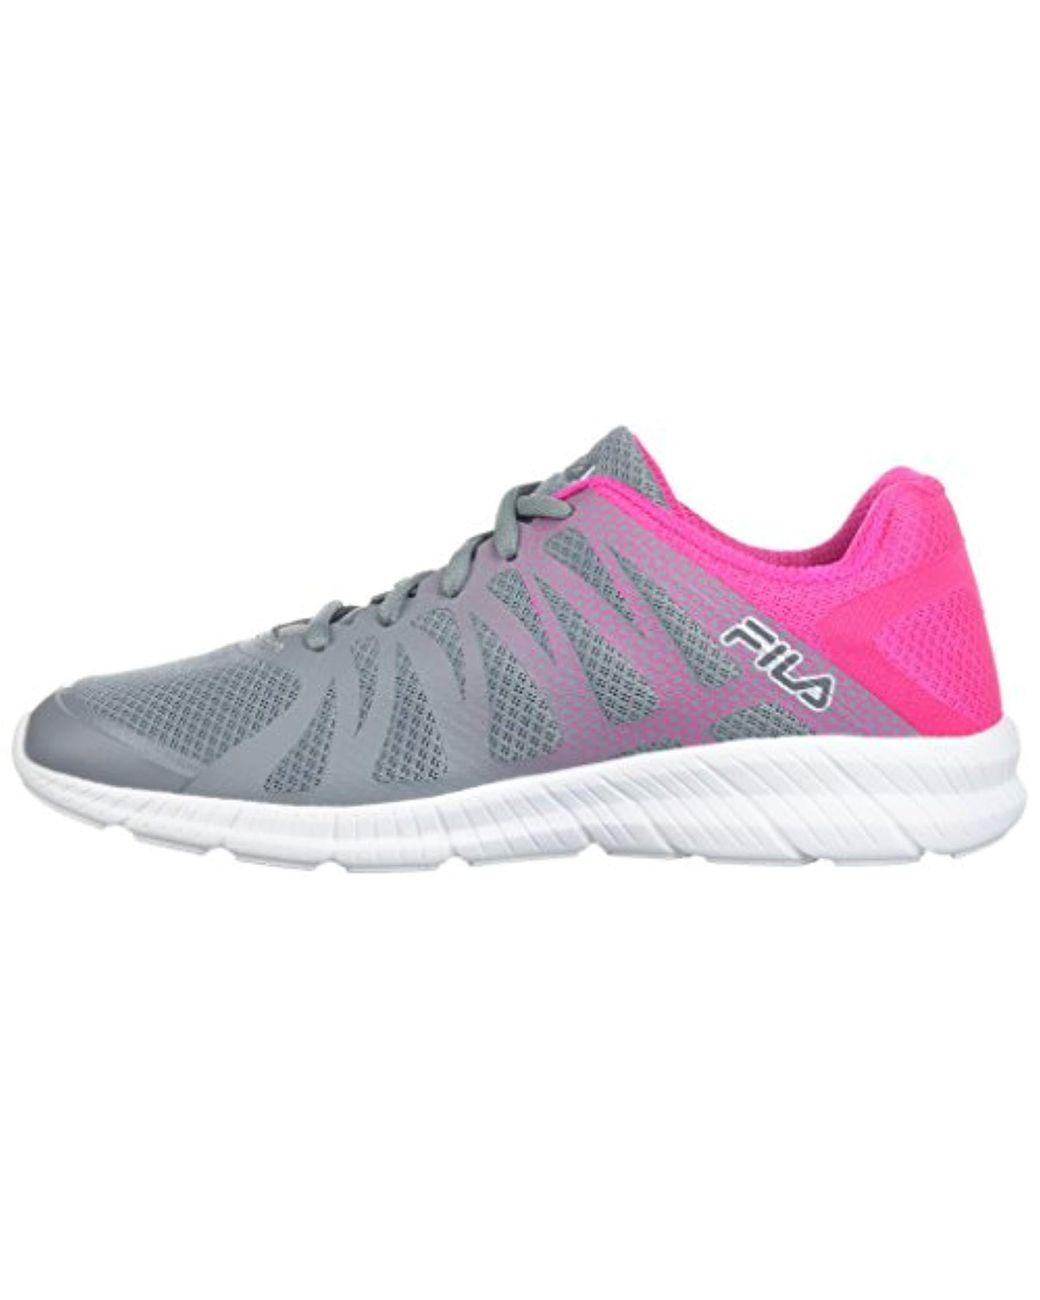 Shoe Memory Fila Finition 21Lyst Leather Save Running 2YWE9DHI